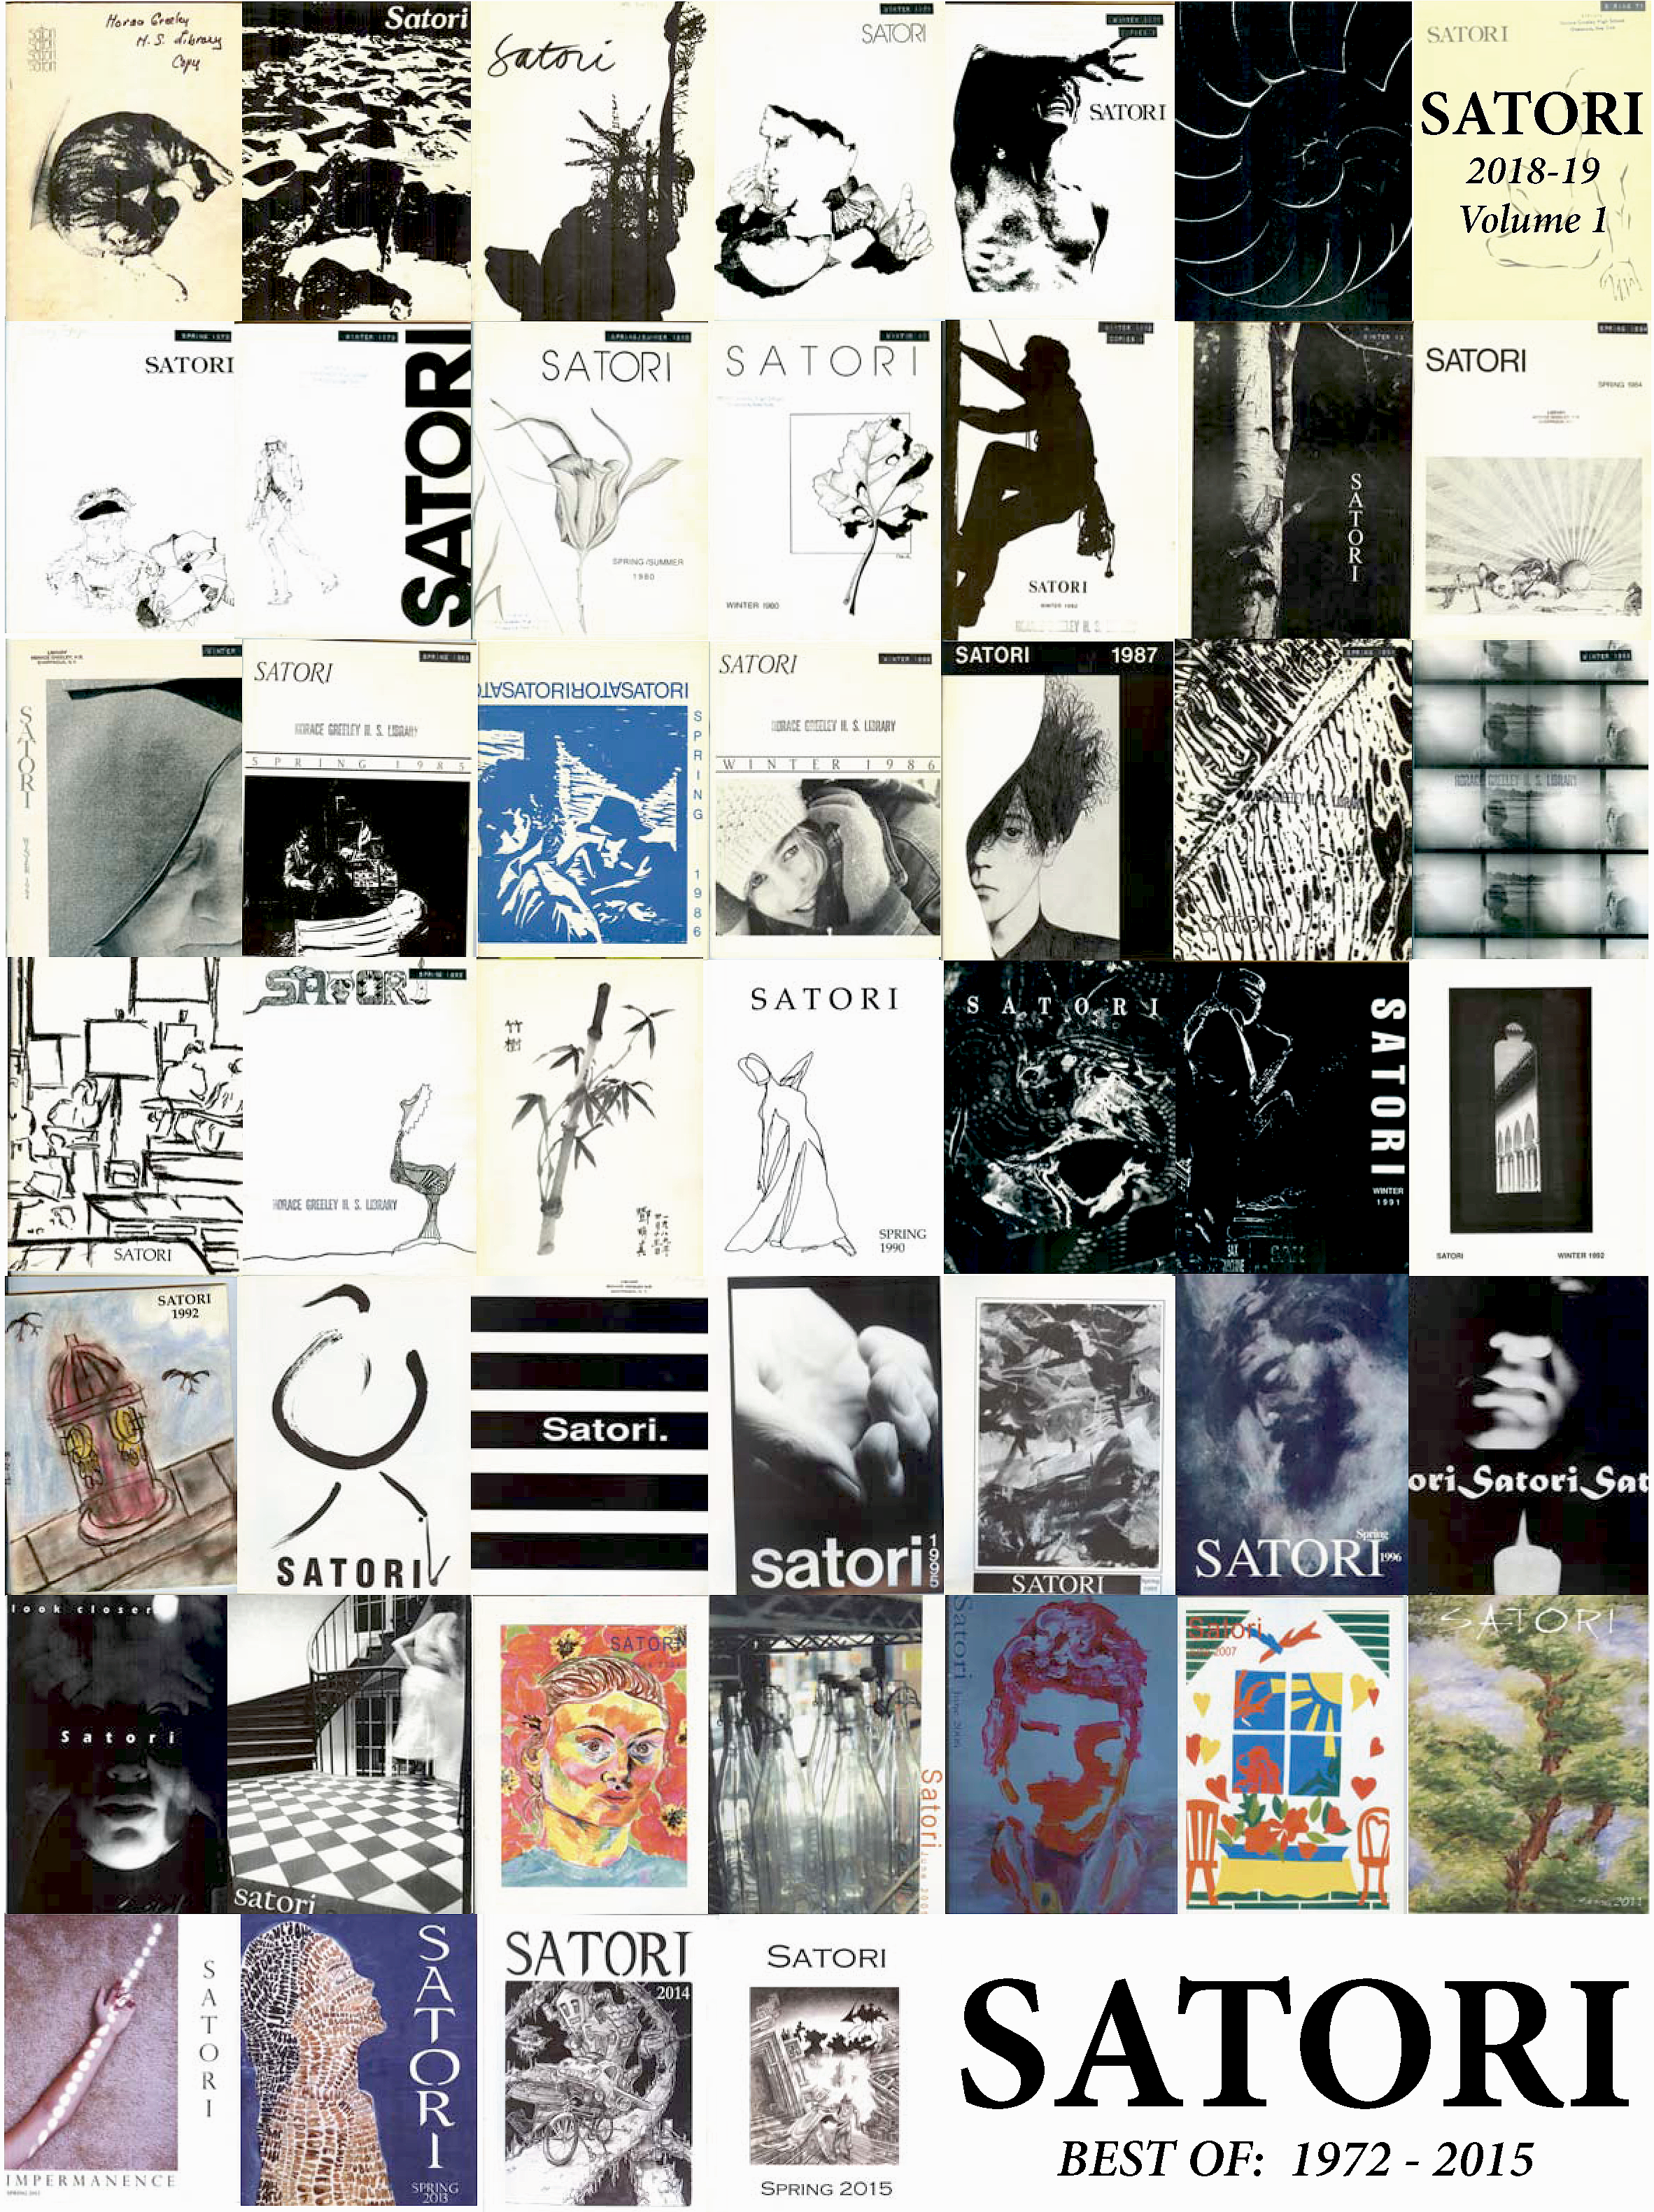 """Best Of"" satori cover 1972-2015"